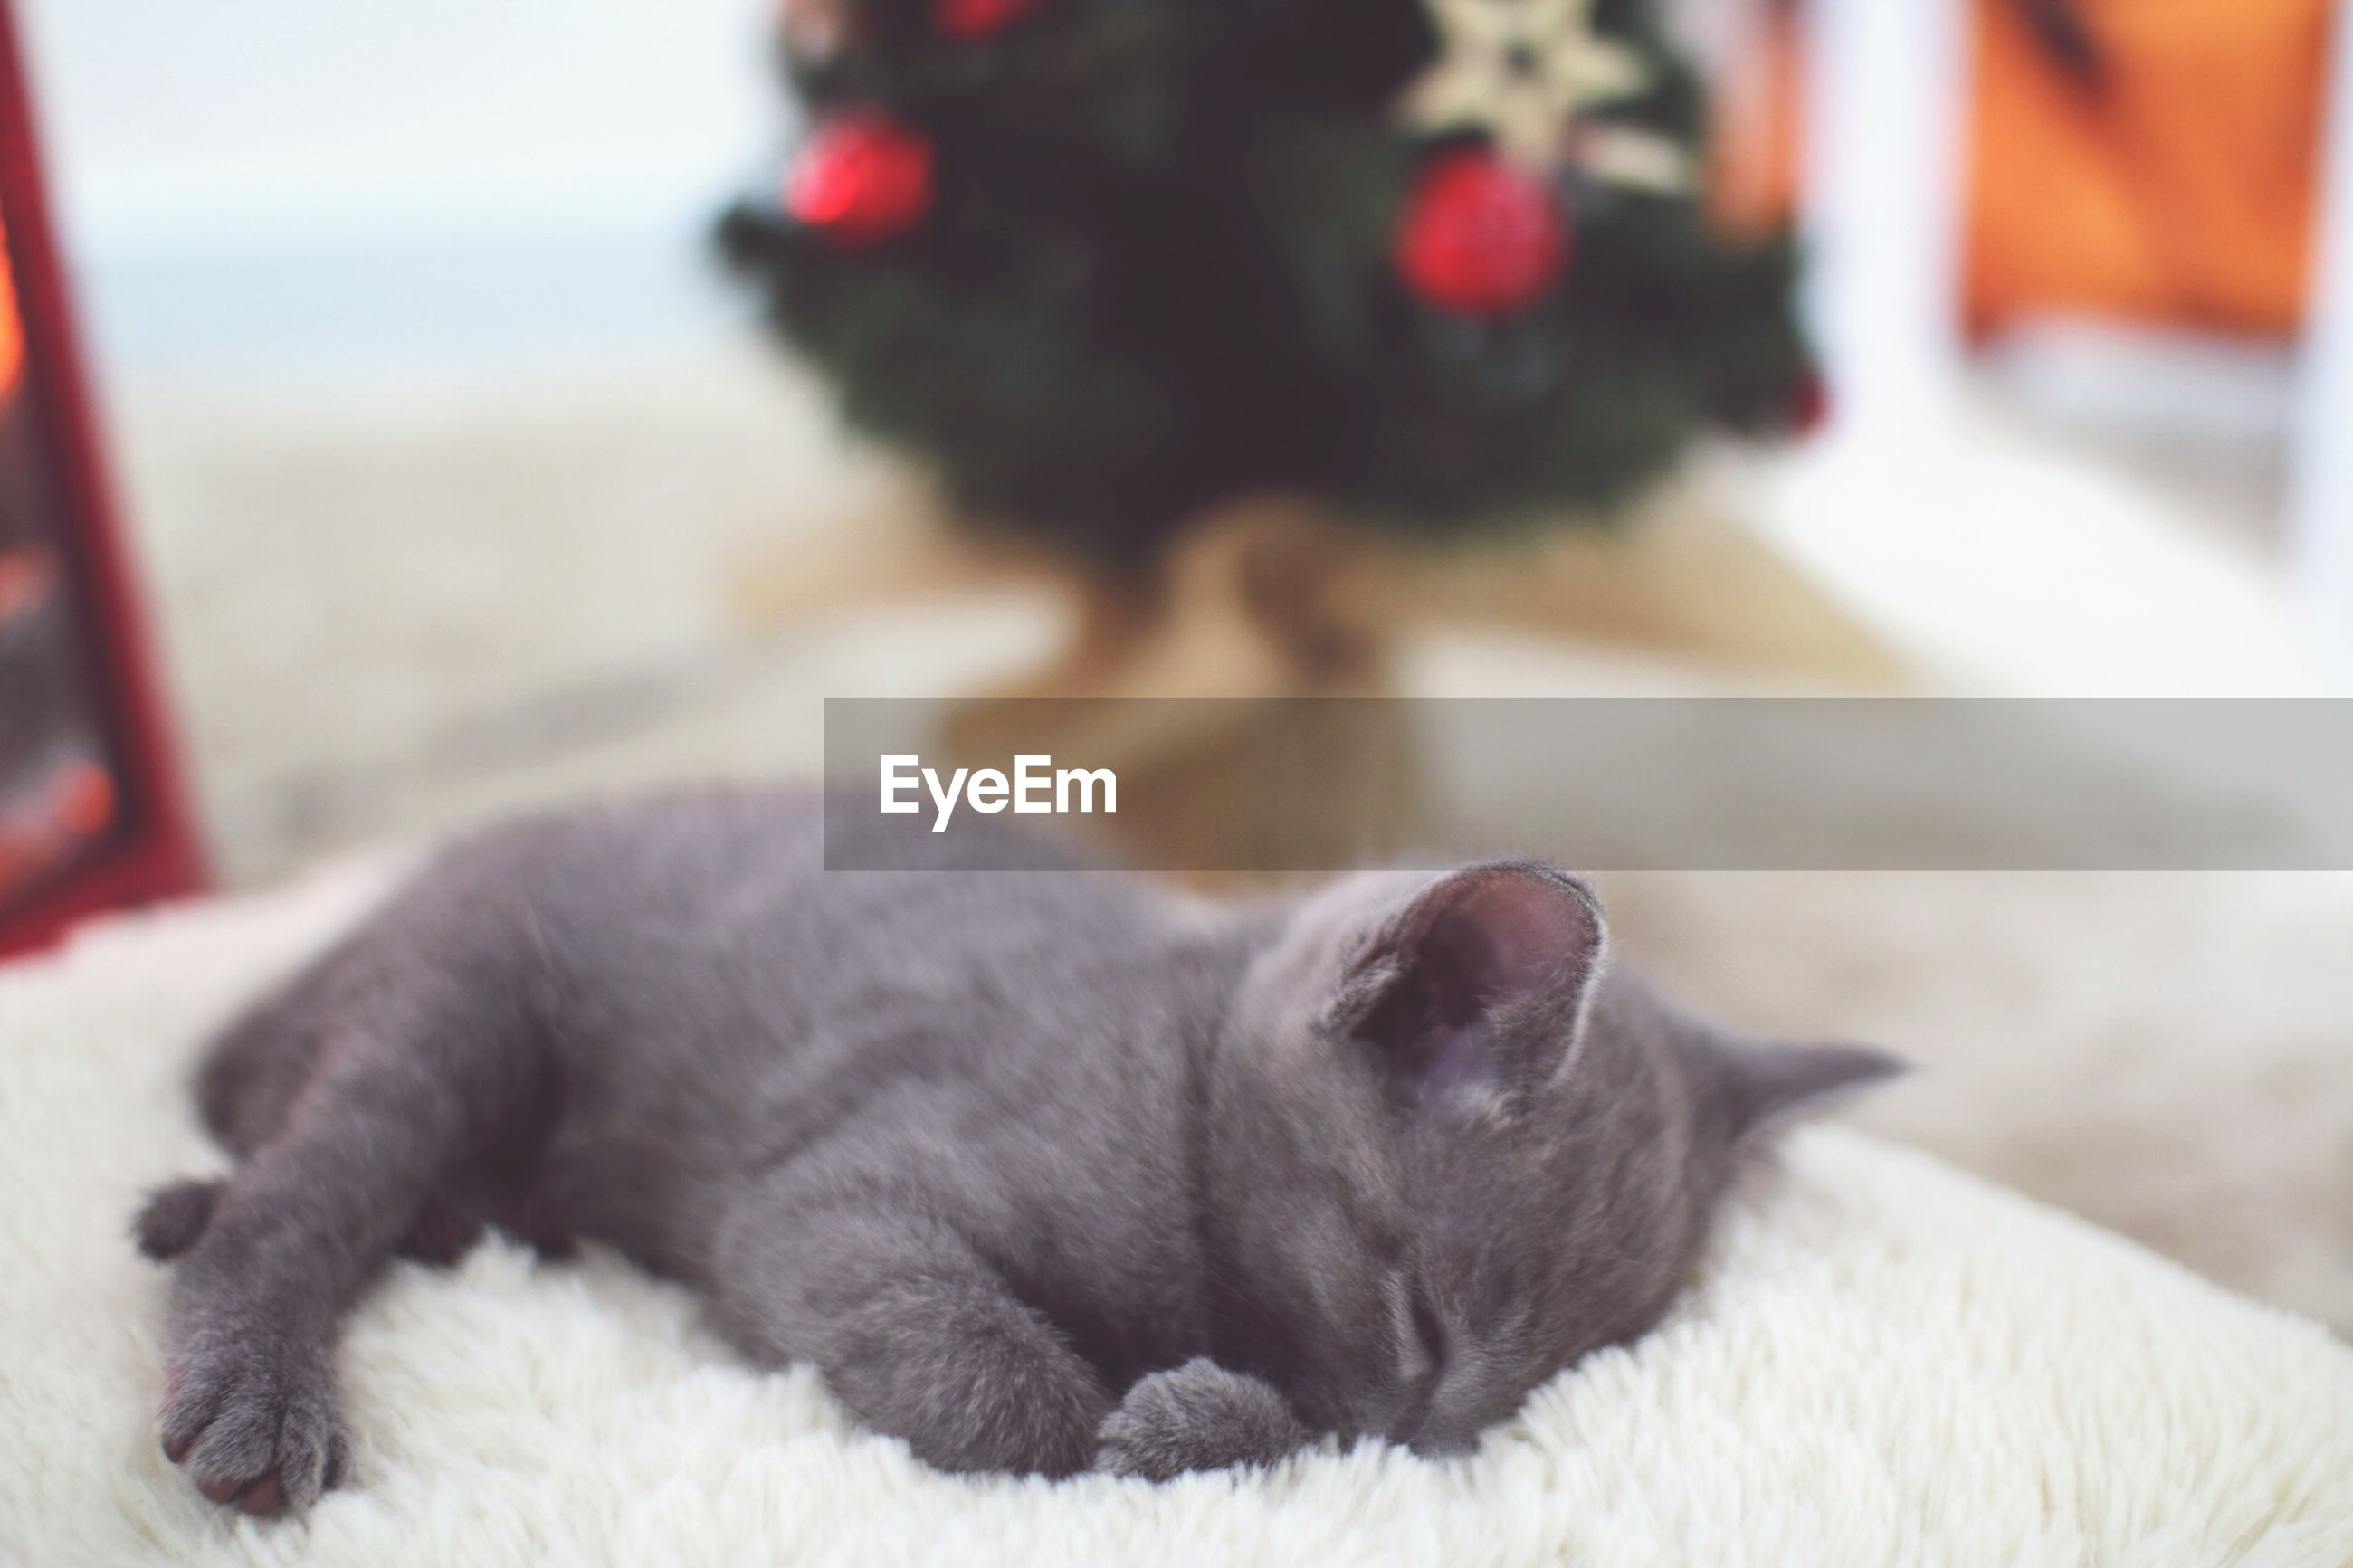 Close-up of cat sleeping on rug at home